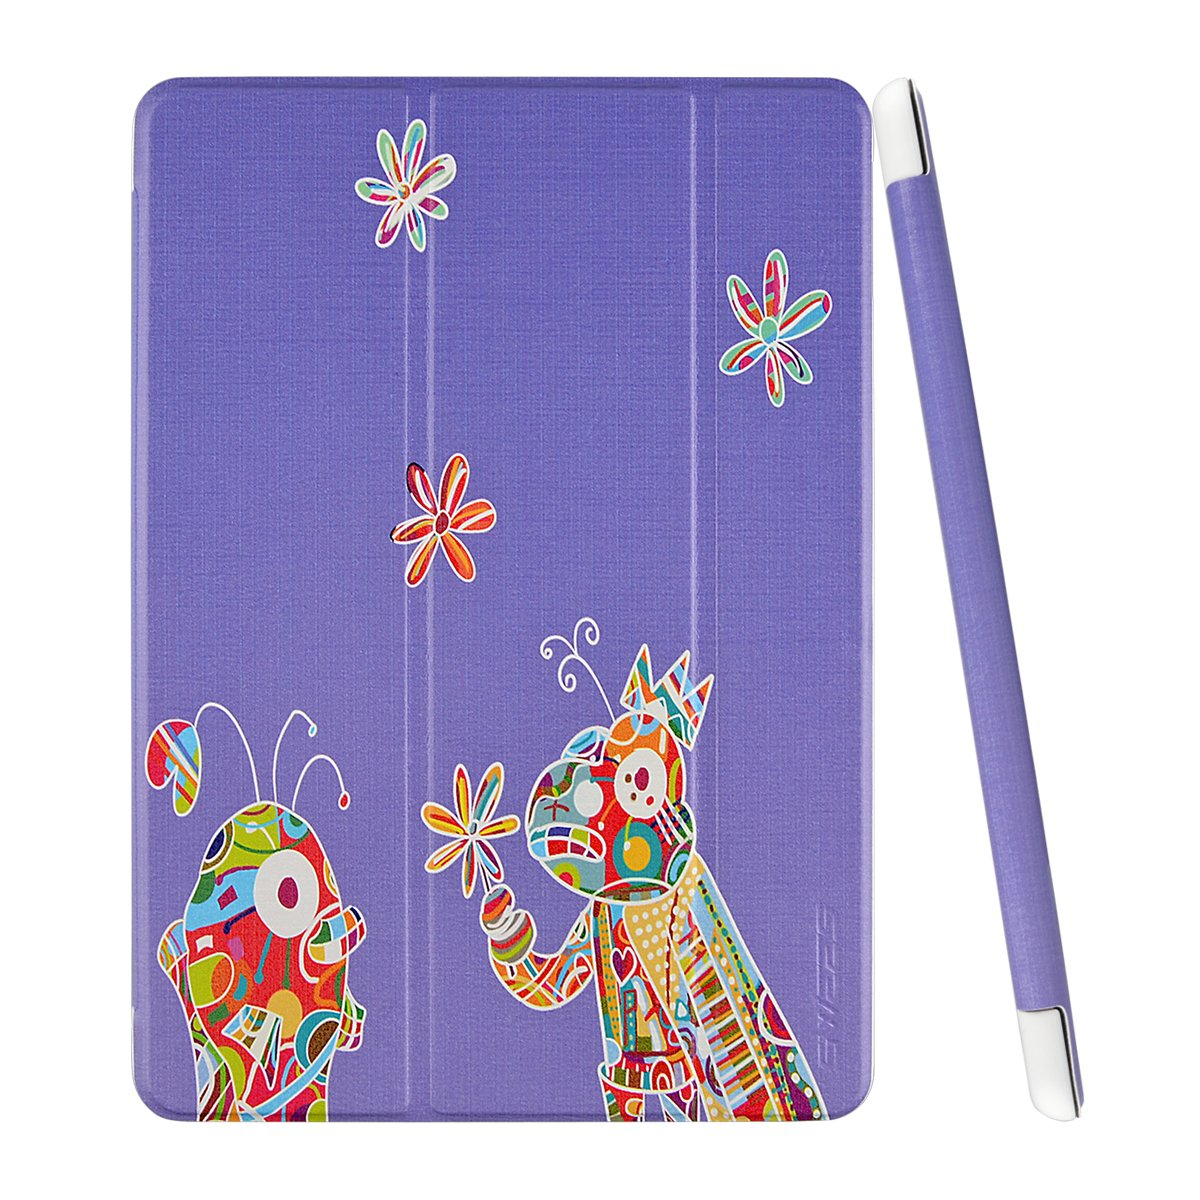 Ipad Air 2 Case - Swees [Music-Loving Fish Series] Pu Leather Smart Cover Cas.. 18